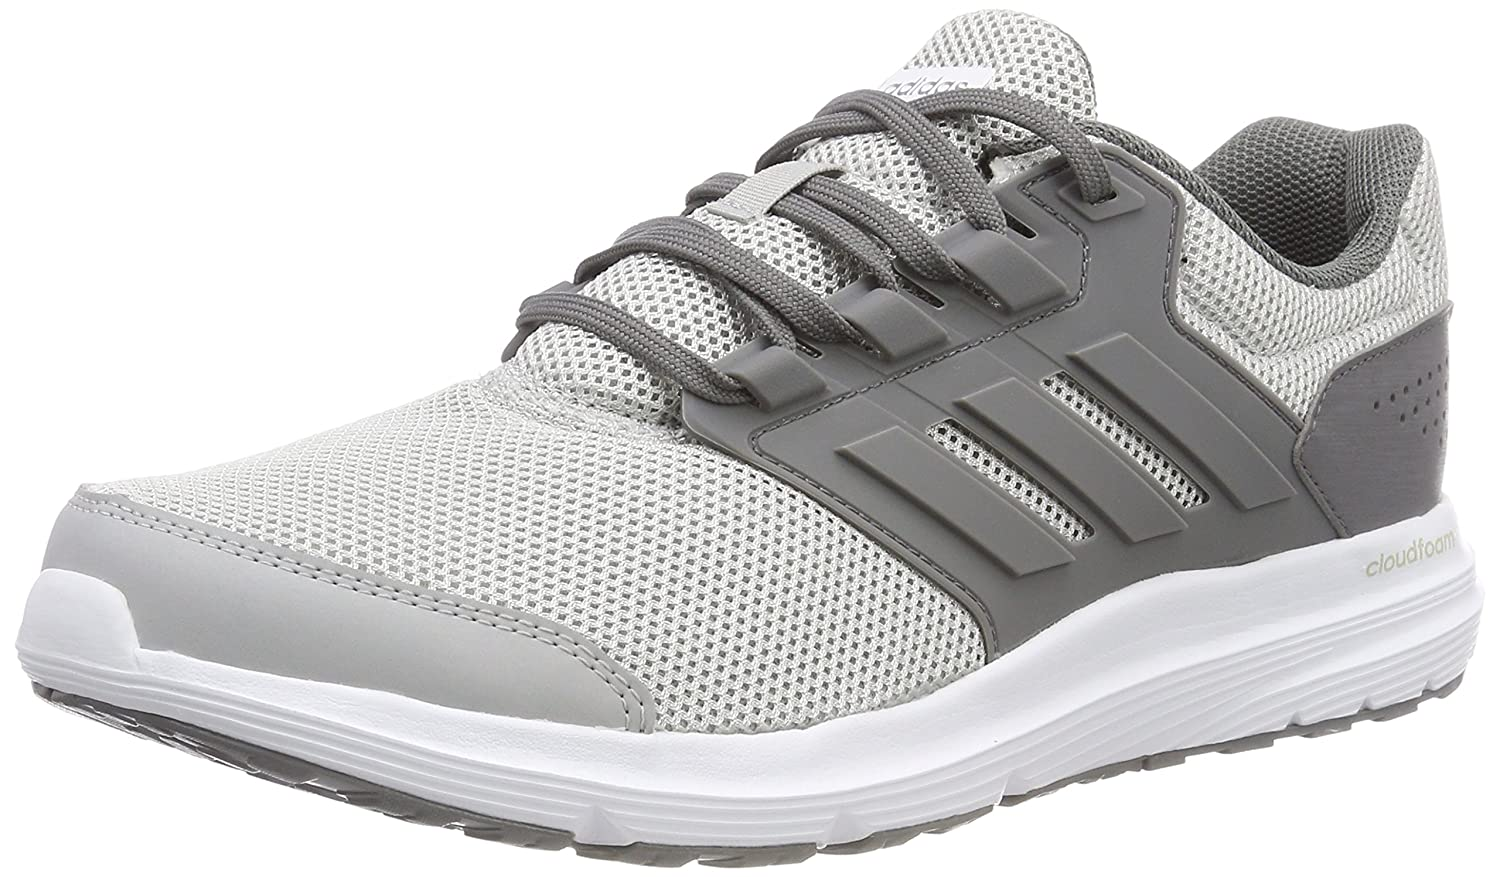 Adidas Galaxy 4, Zapatillas de Running para Mujer 38 EU|Gris (Grey Two F17/Grey Four F17/Matte Silver)